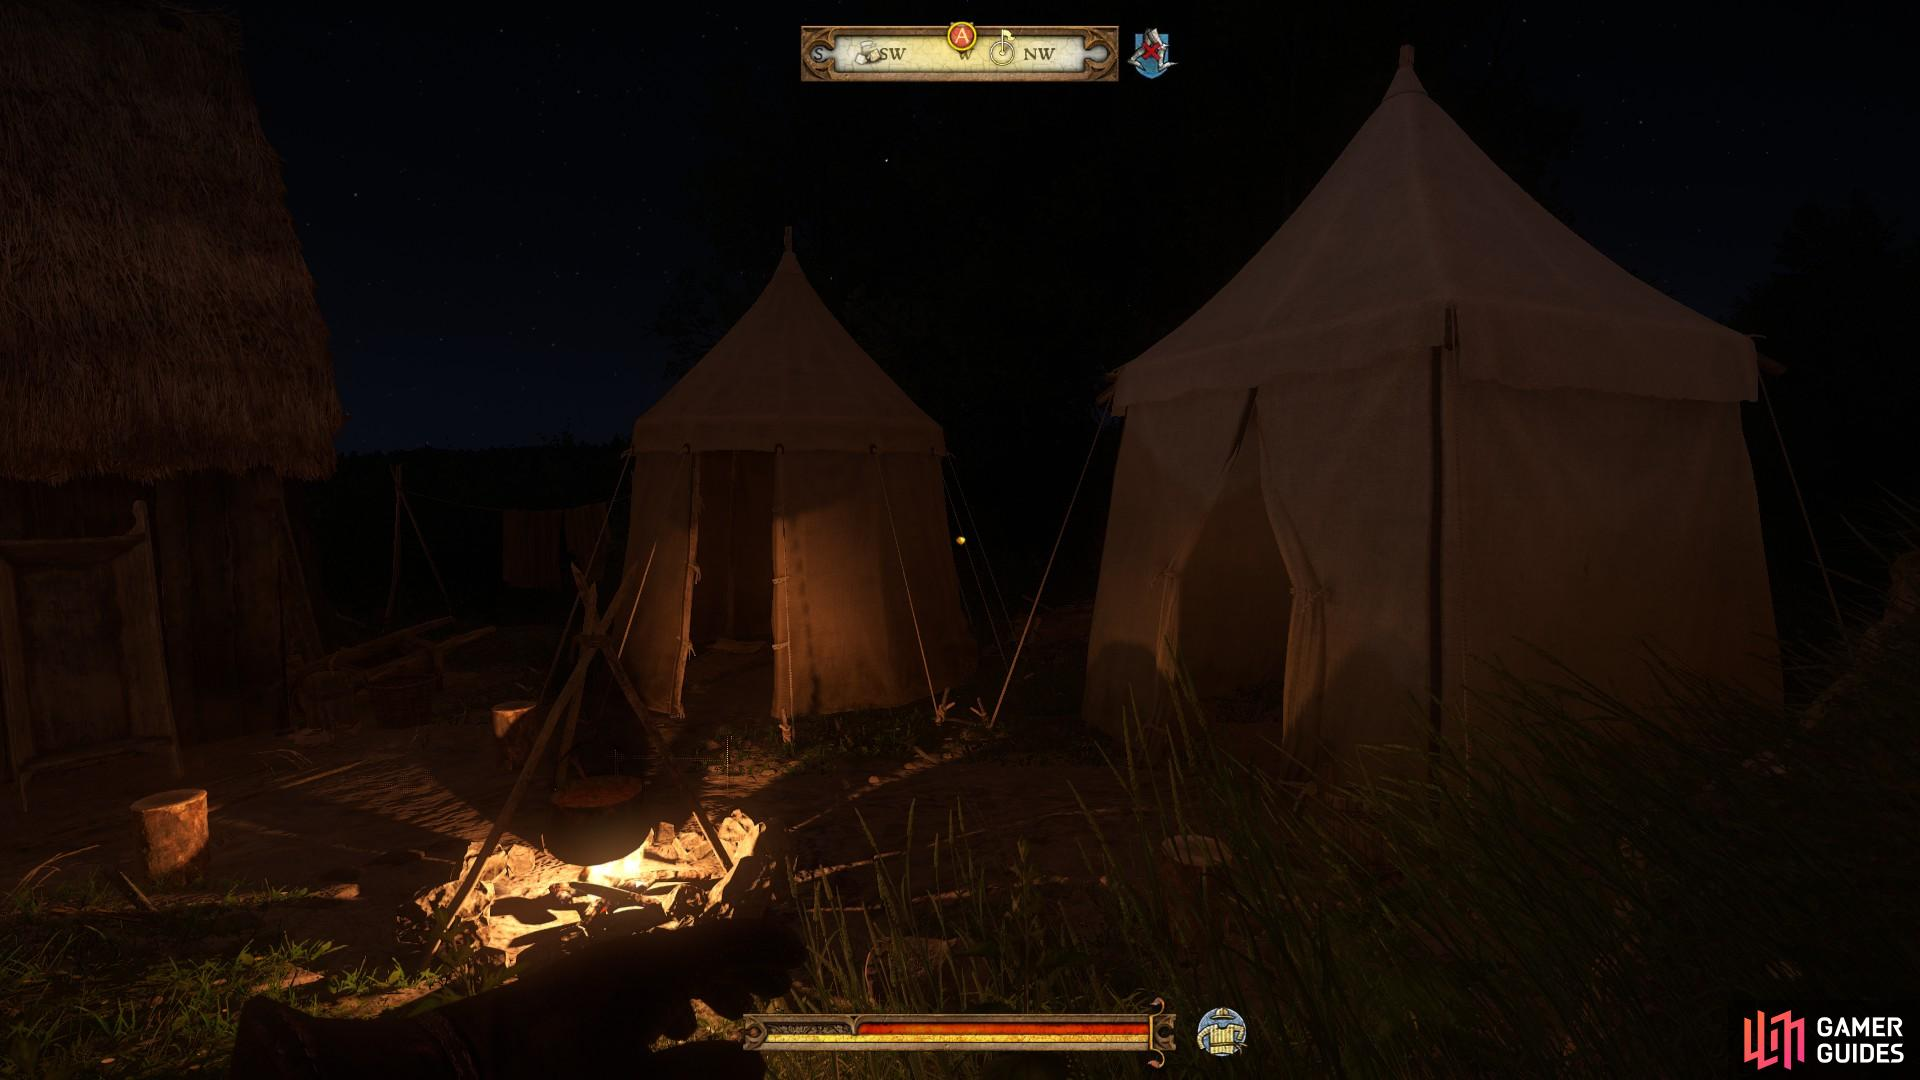 The executioner's sword can be found in the small tent on the left.